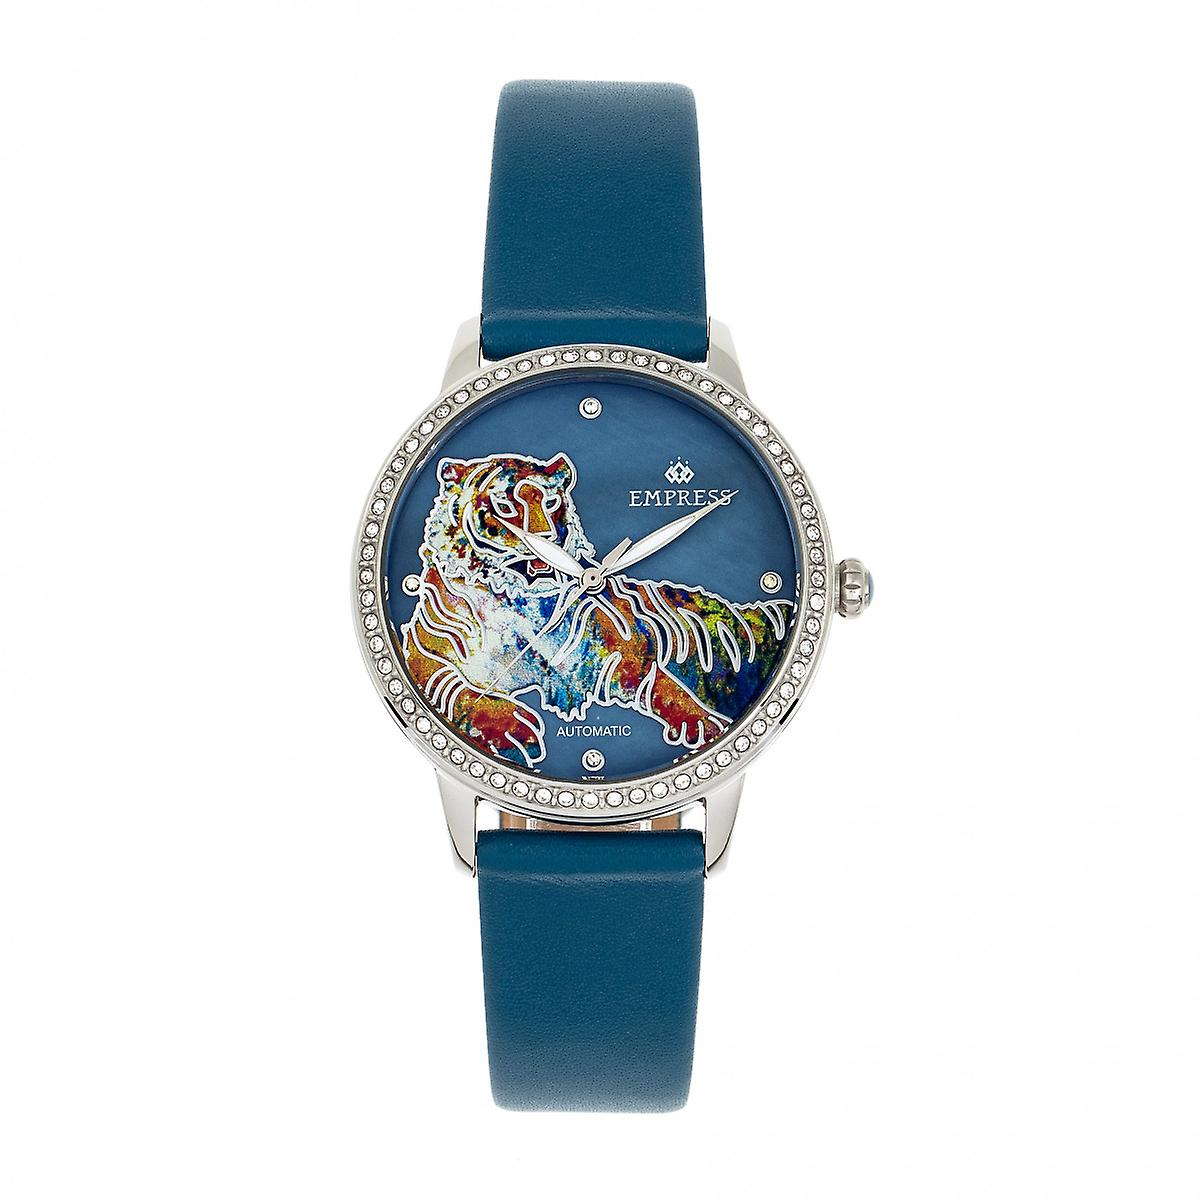 Empress Diana Automatic Engraved MOP Leather-Band Watch - Blue